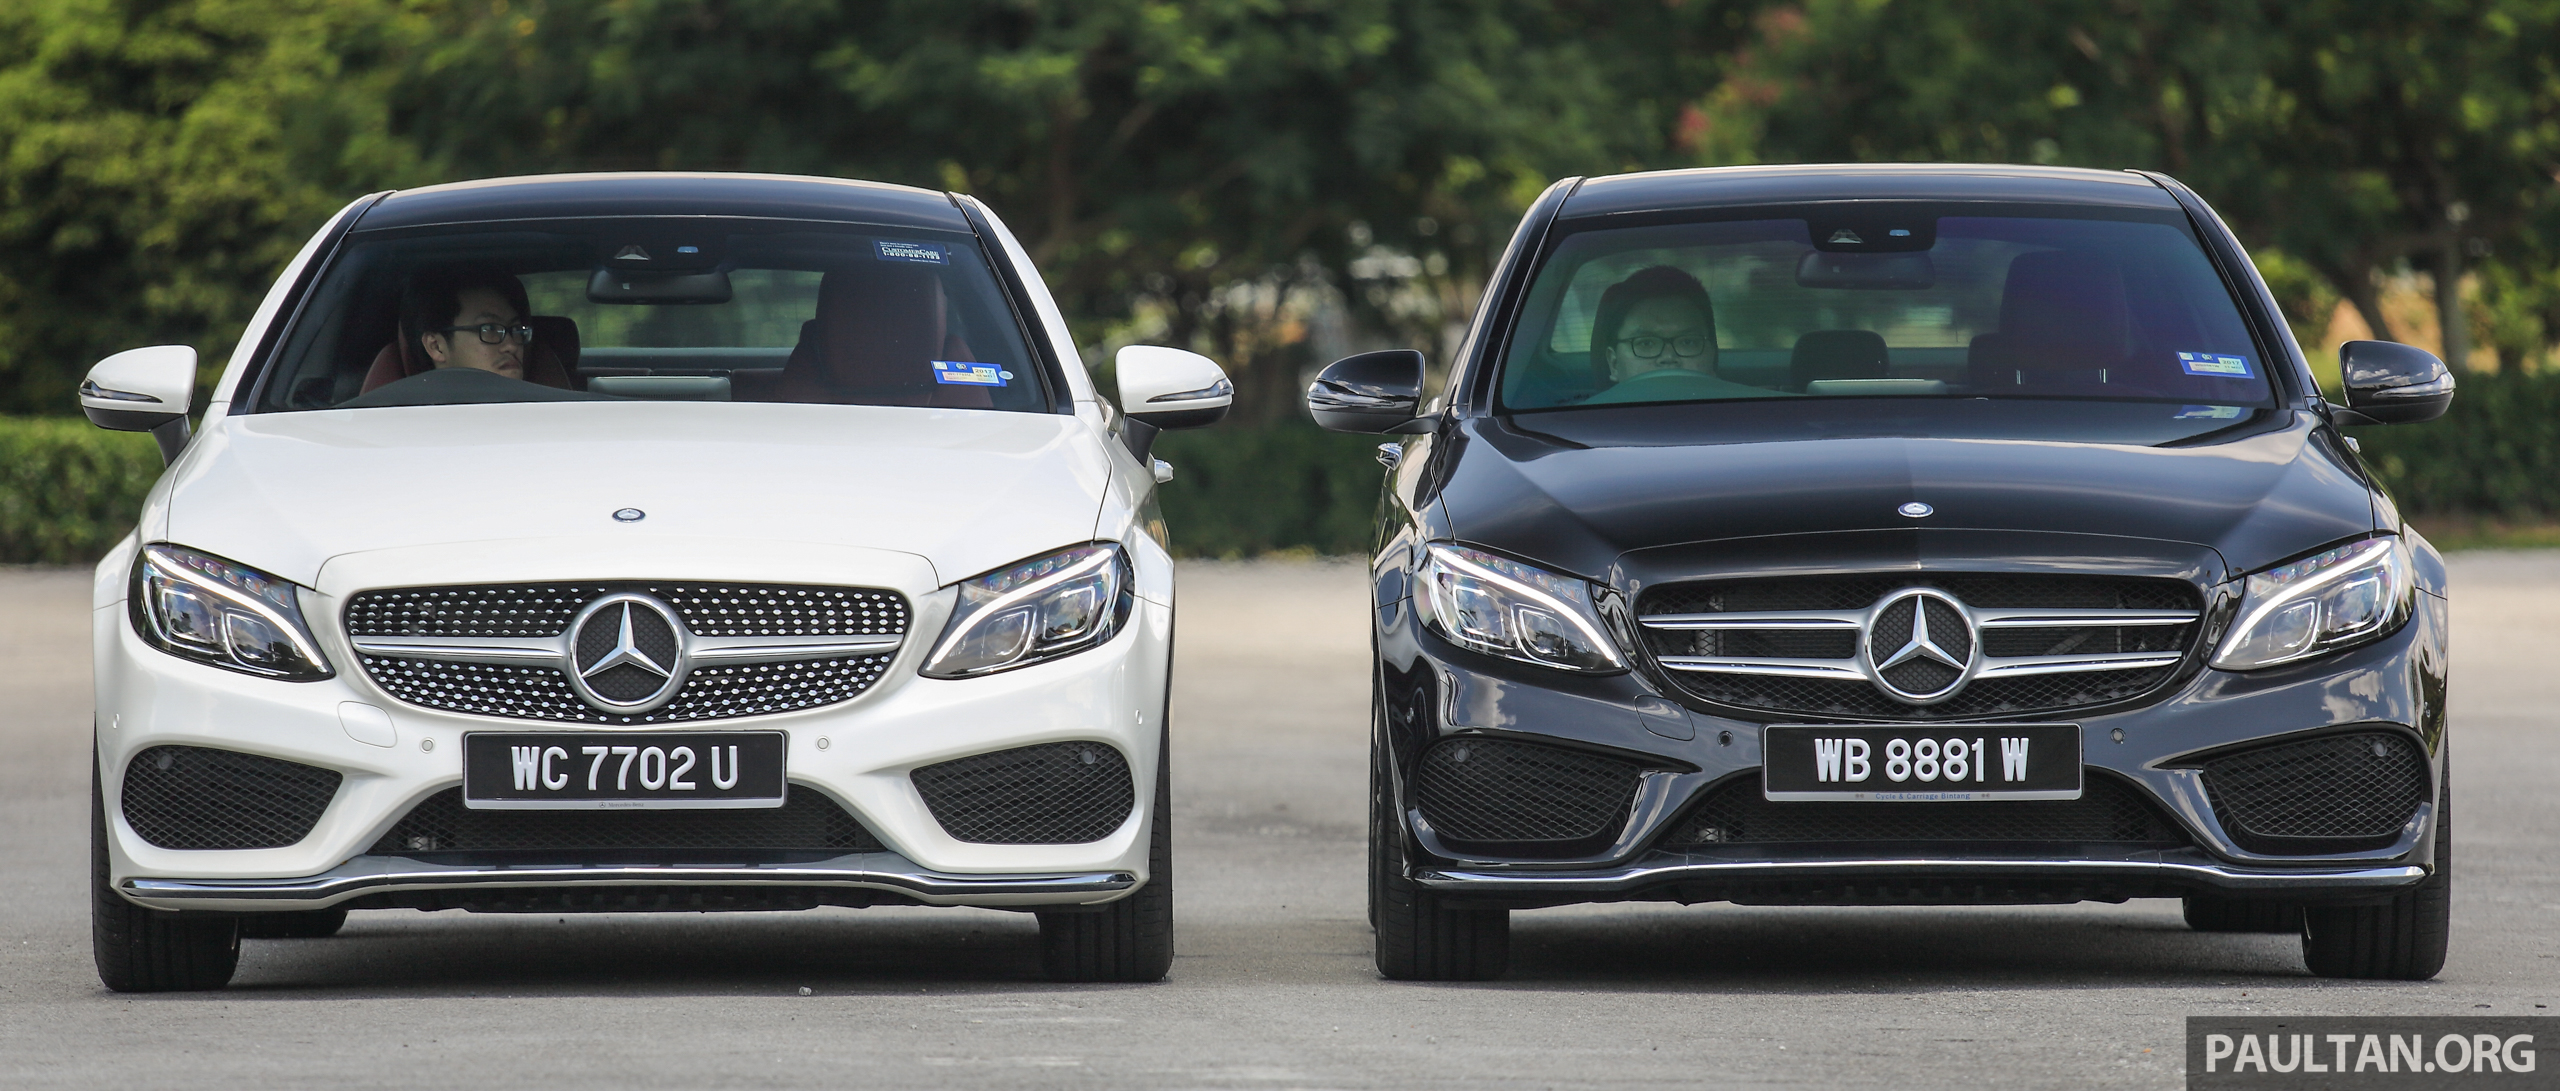 Gallery Mercedes Benz Coupe Vs Sedan Image